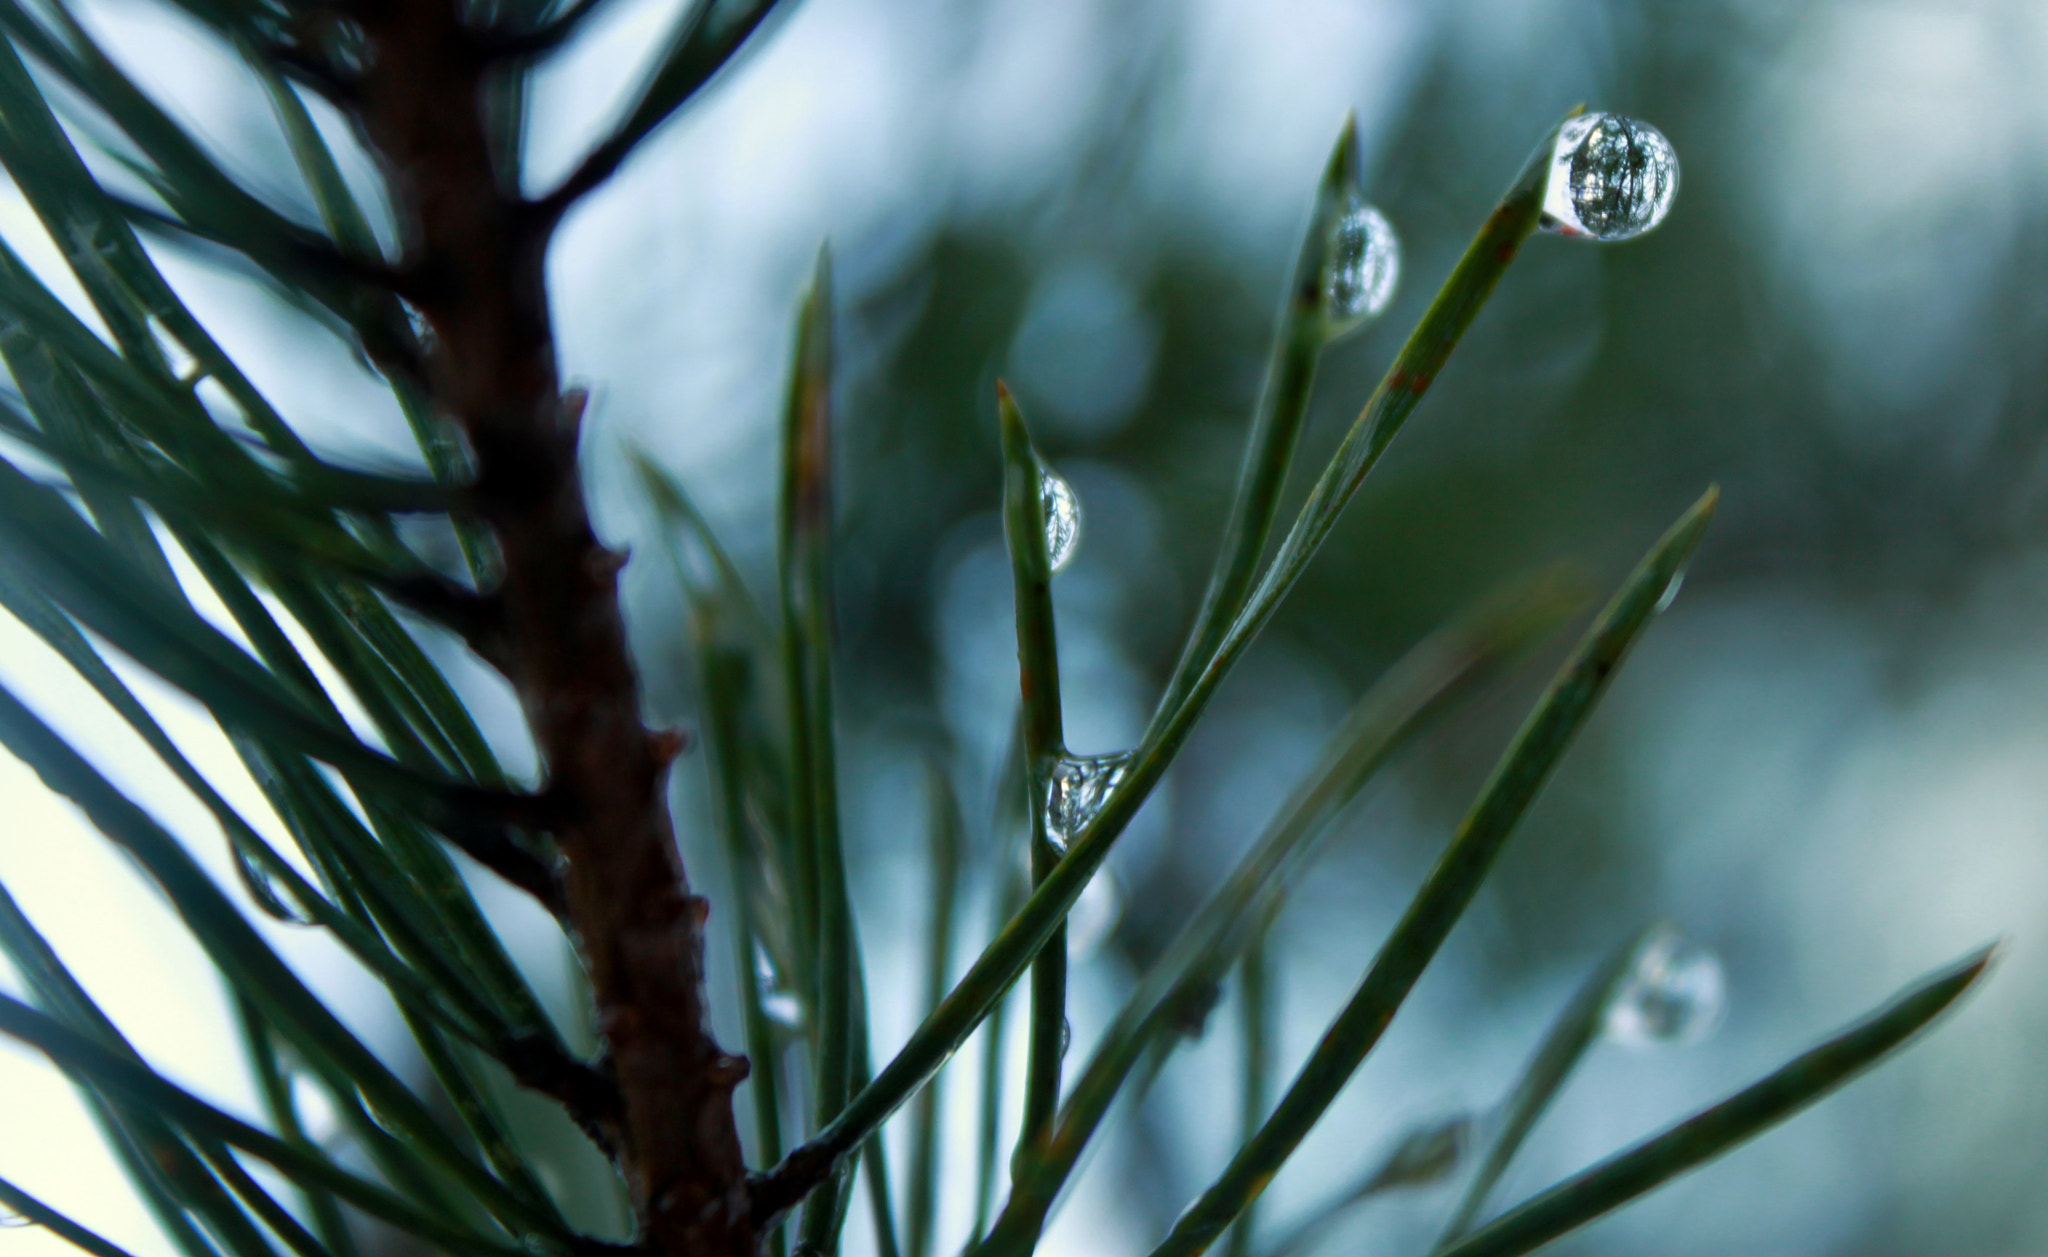 Photograph Water Drops by Marte Gerhardsen on 500px